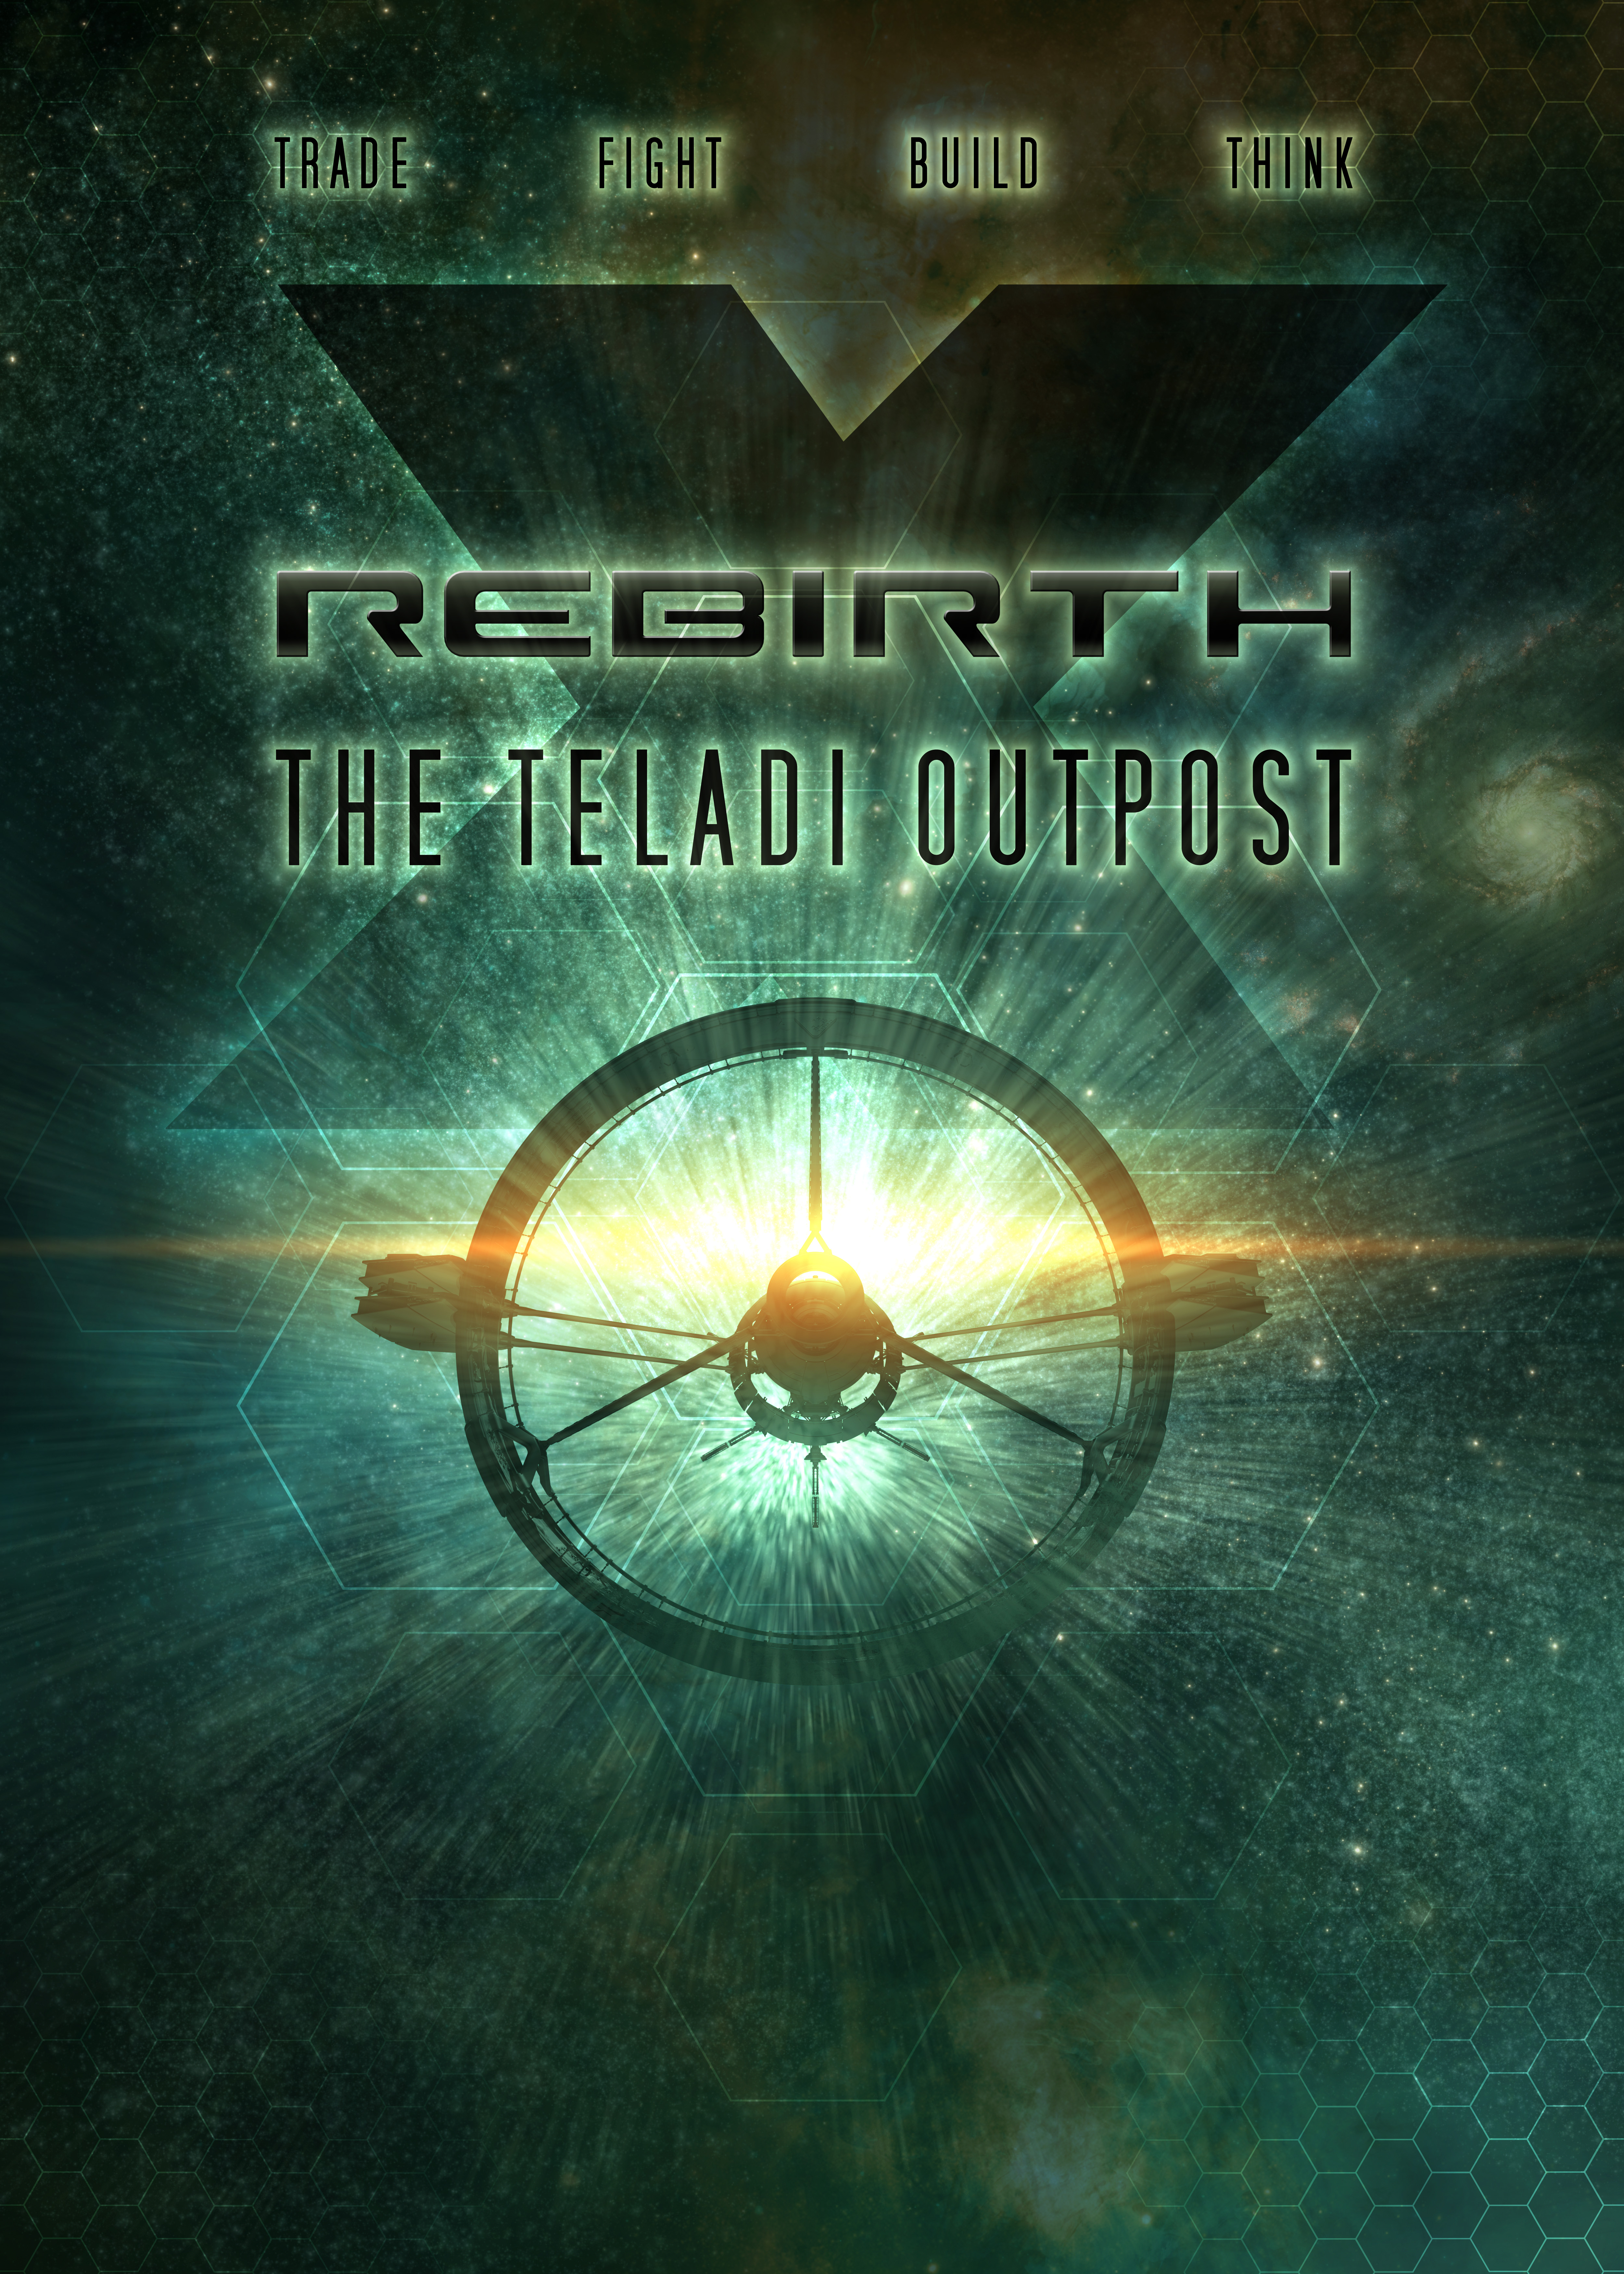 x-rebirth-the-teladi-outpost-pc-steam-code